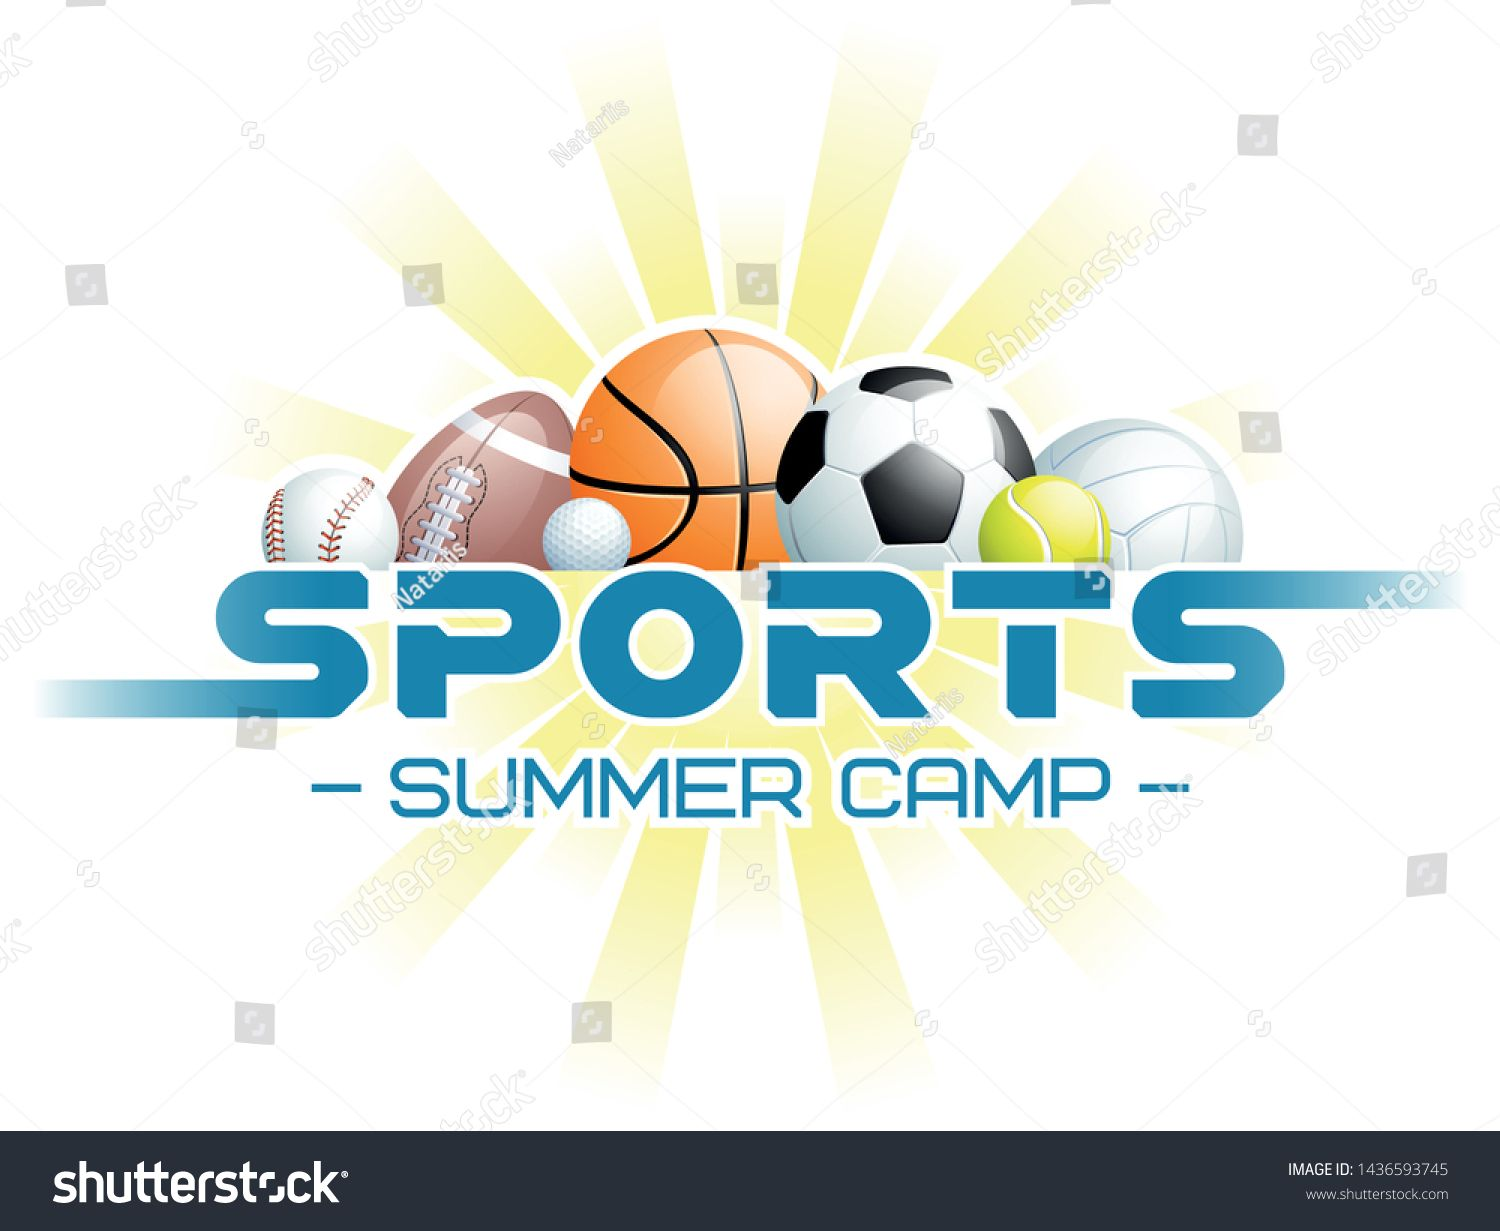 Sports Summer Camp Concept Different Balls Royalty Free Image Vector Different Sports Summer Sports